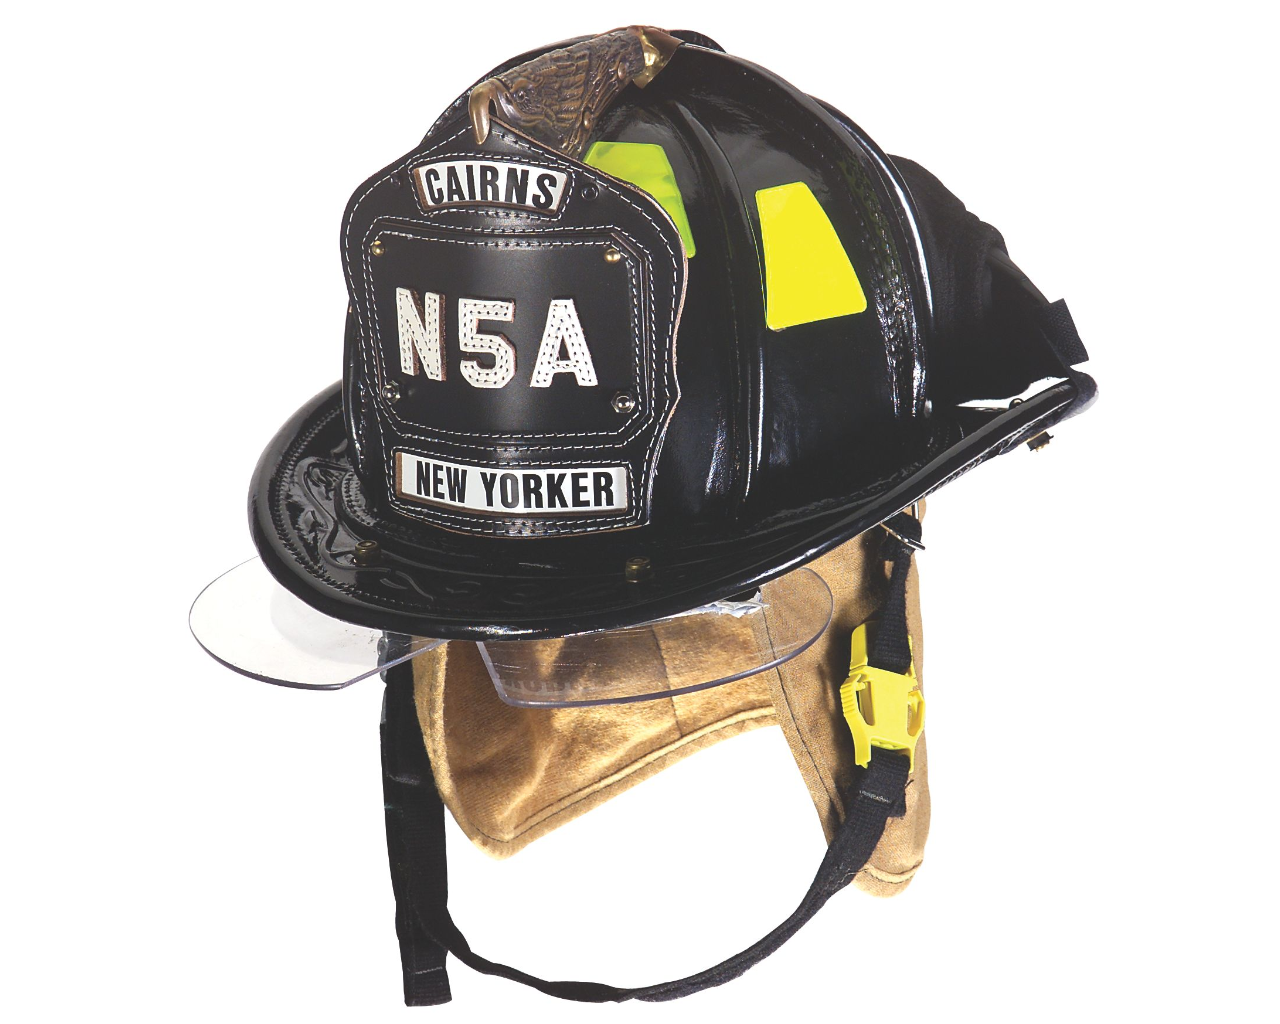 Cairns® N5A New Yorker™ Leather Fire Helmet with bourkes-CAIRNS